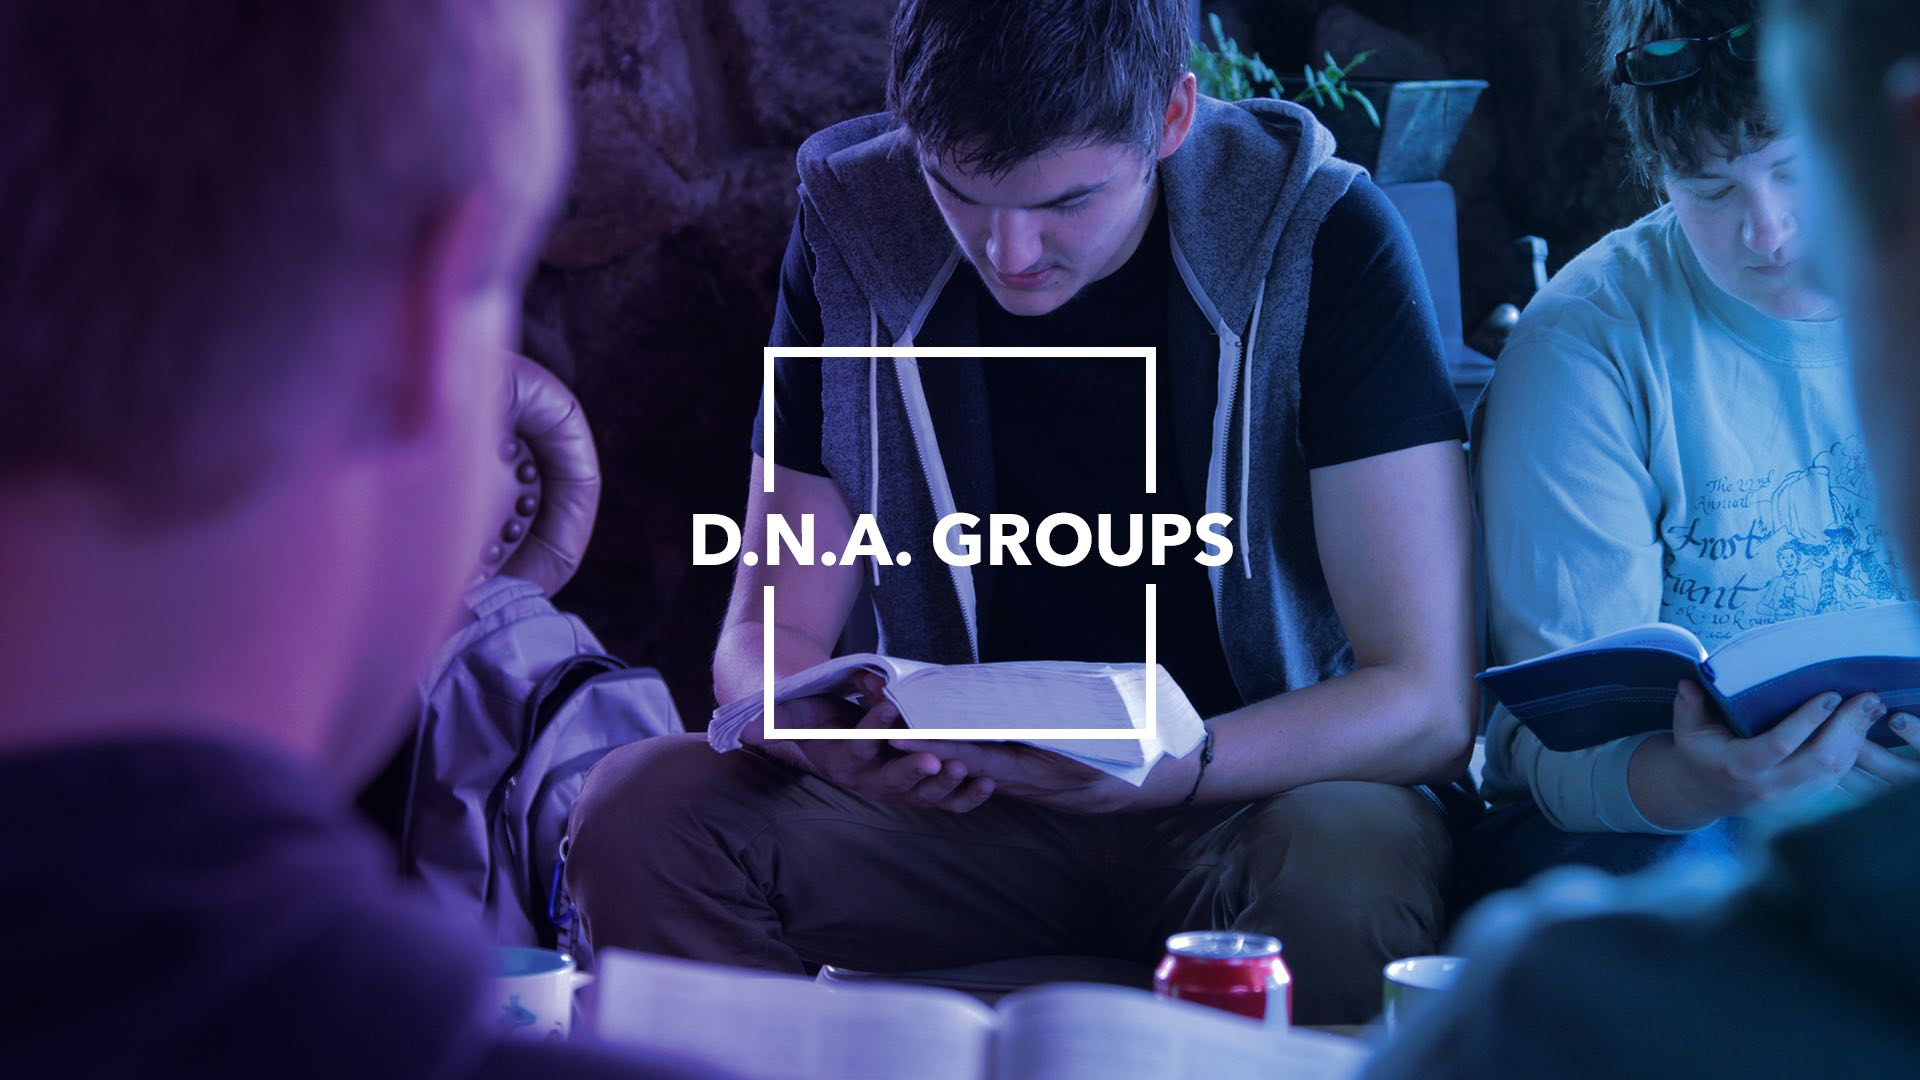 DNA GROUPS.jpg